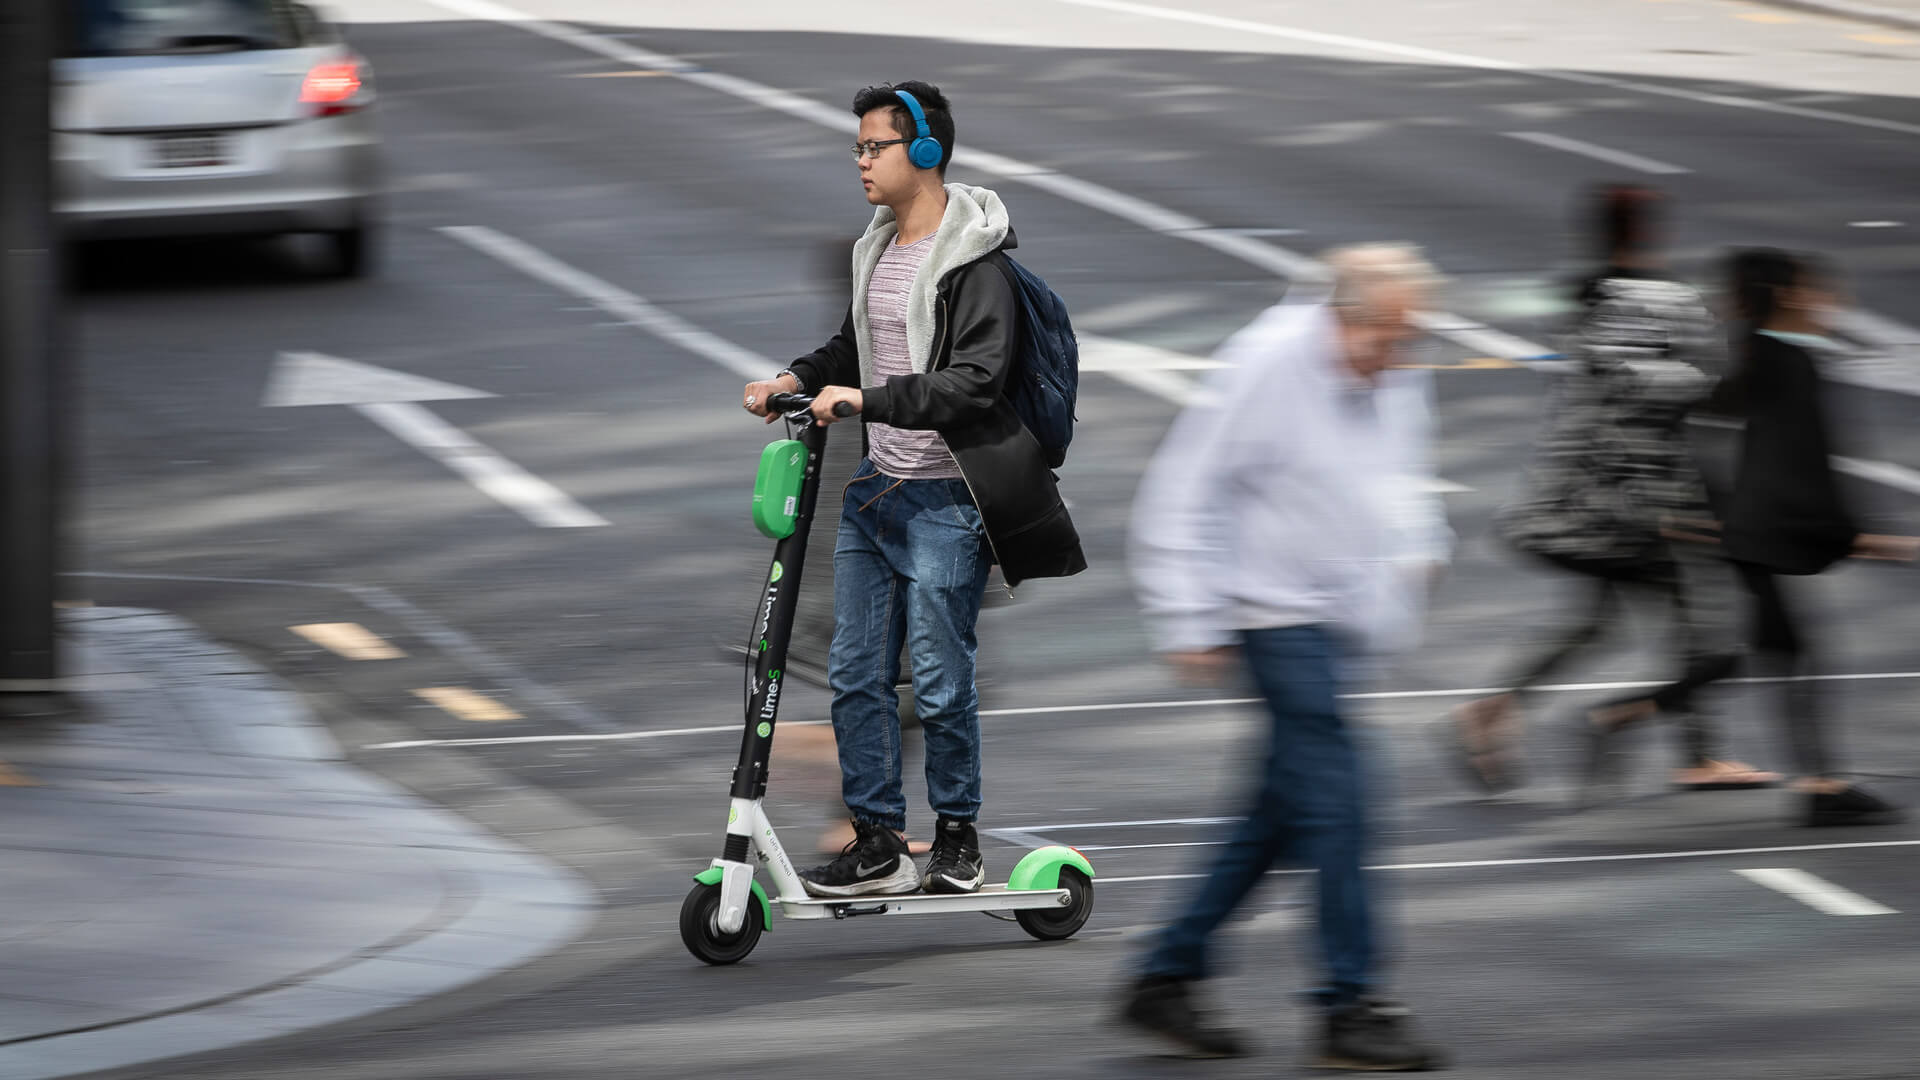 Drivers of Segways knocked people to death. How to deal with it?